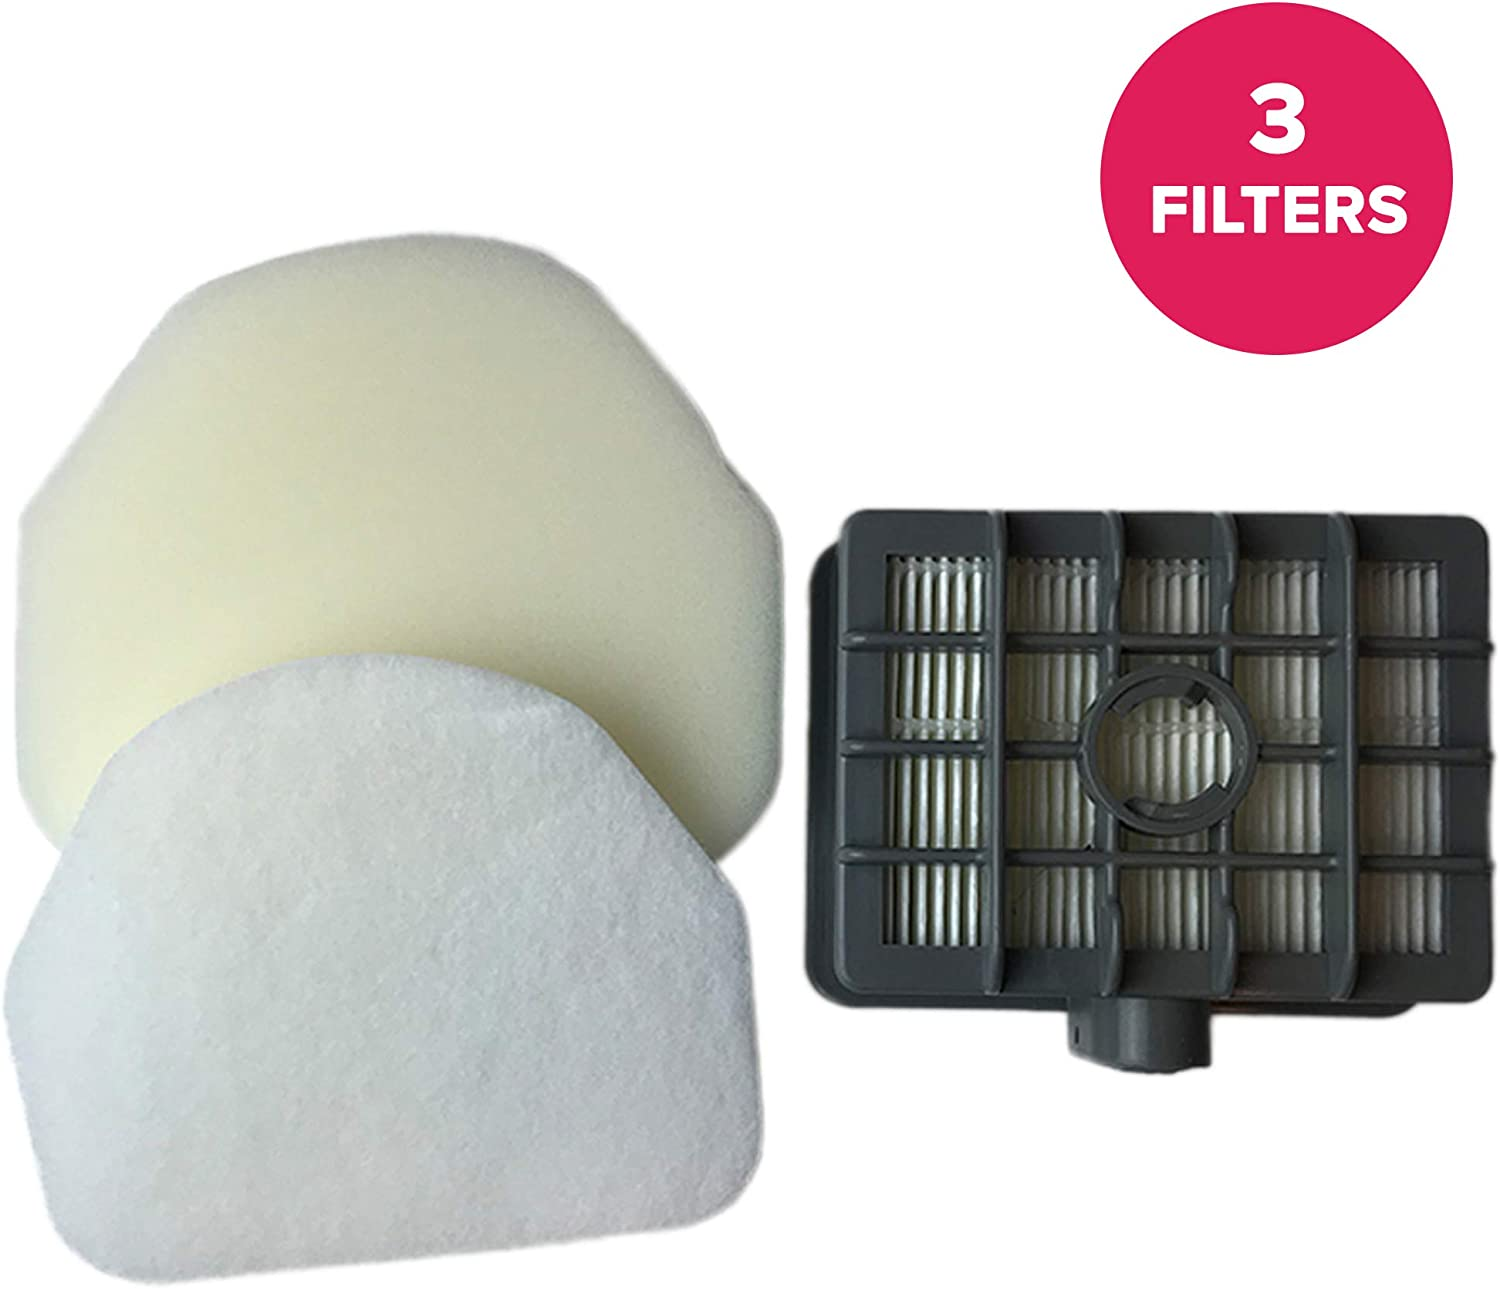 Think Crucial Replacement for Shark NV450 HEPA Style, Foam & Felt Filter Fits Rotator NV450, Compatible With Part # XFF450 & XHF450